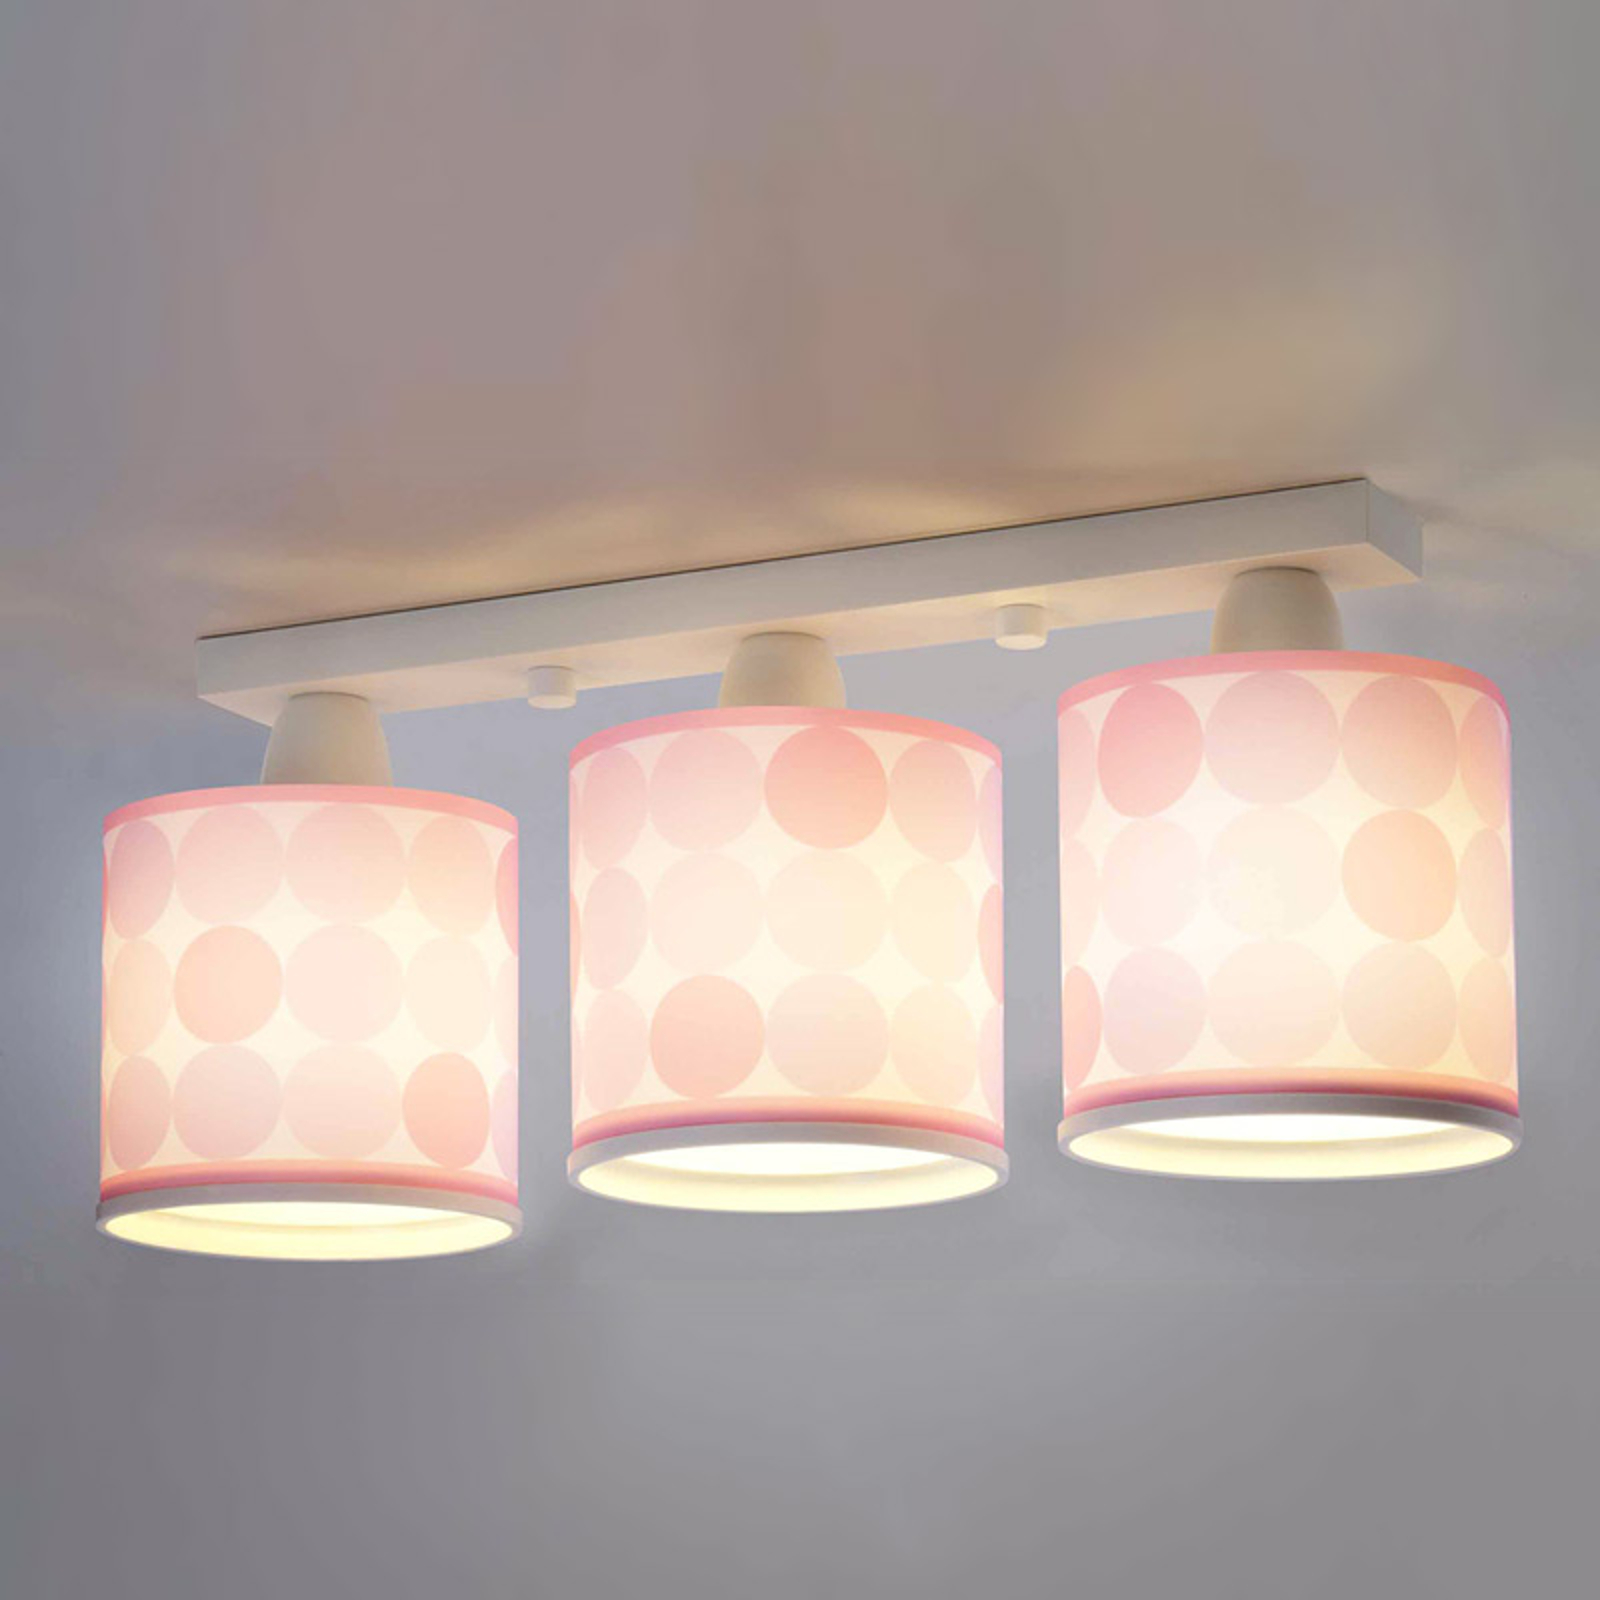 Dotted ceiling light Colors, pink_2507305_1